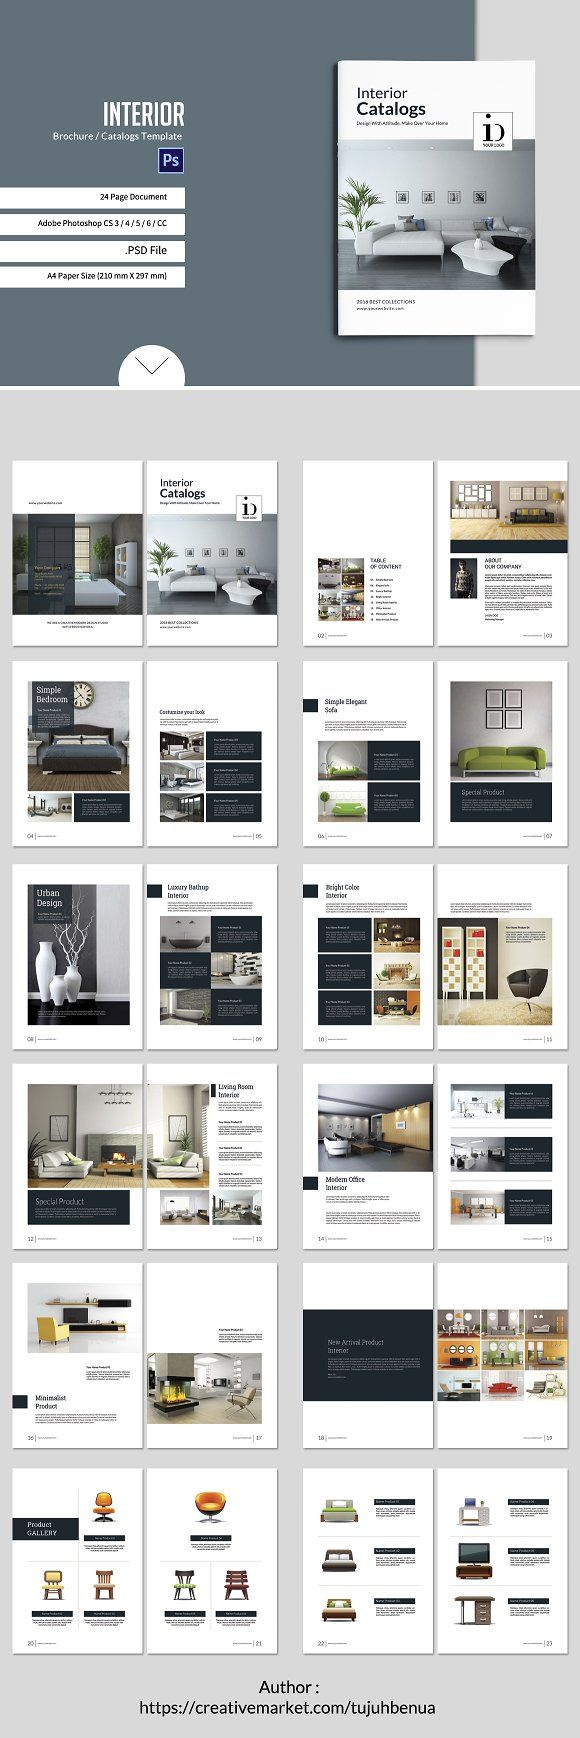 Interior Brochure/Catalogs Template by tujuhbenua on @creativemarket